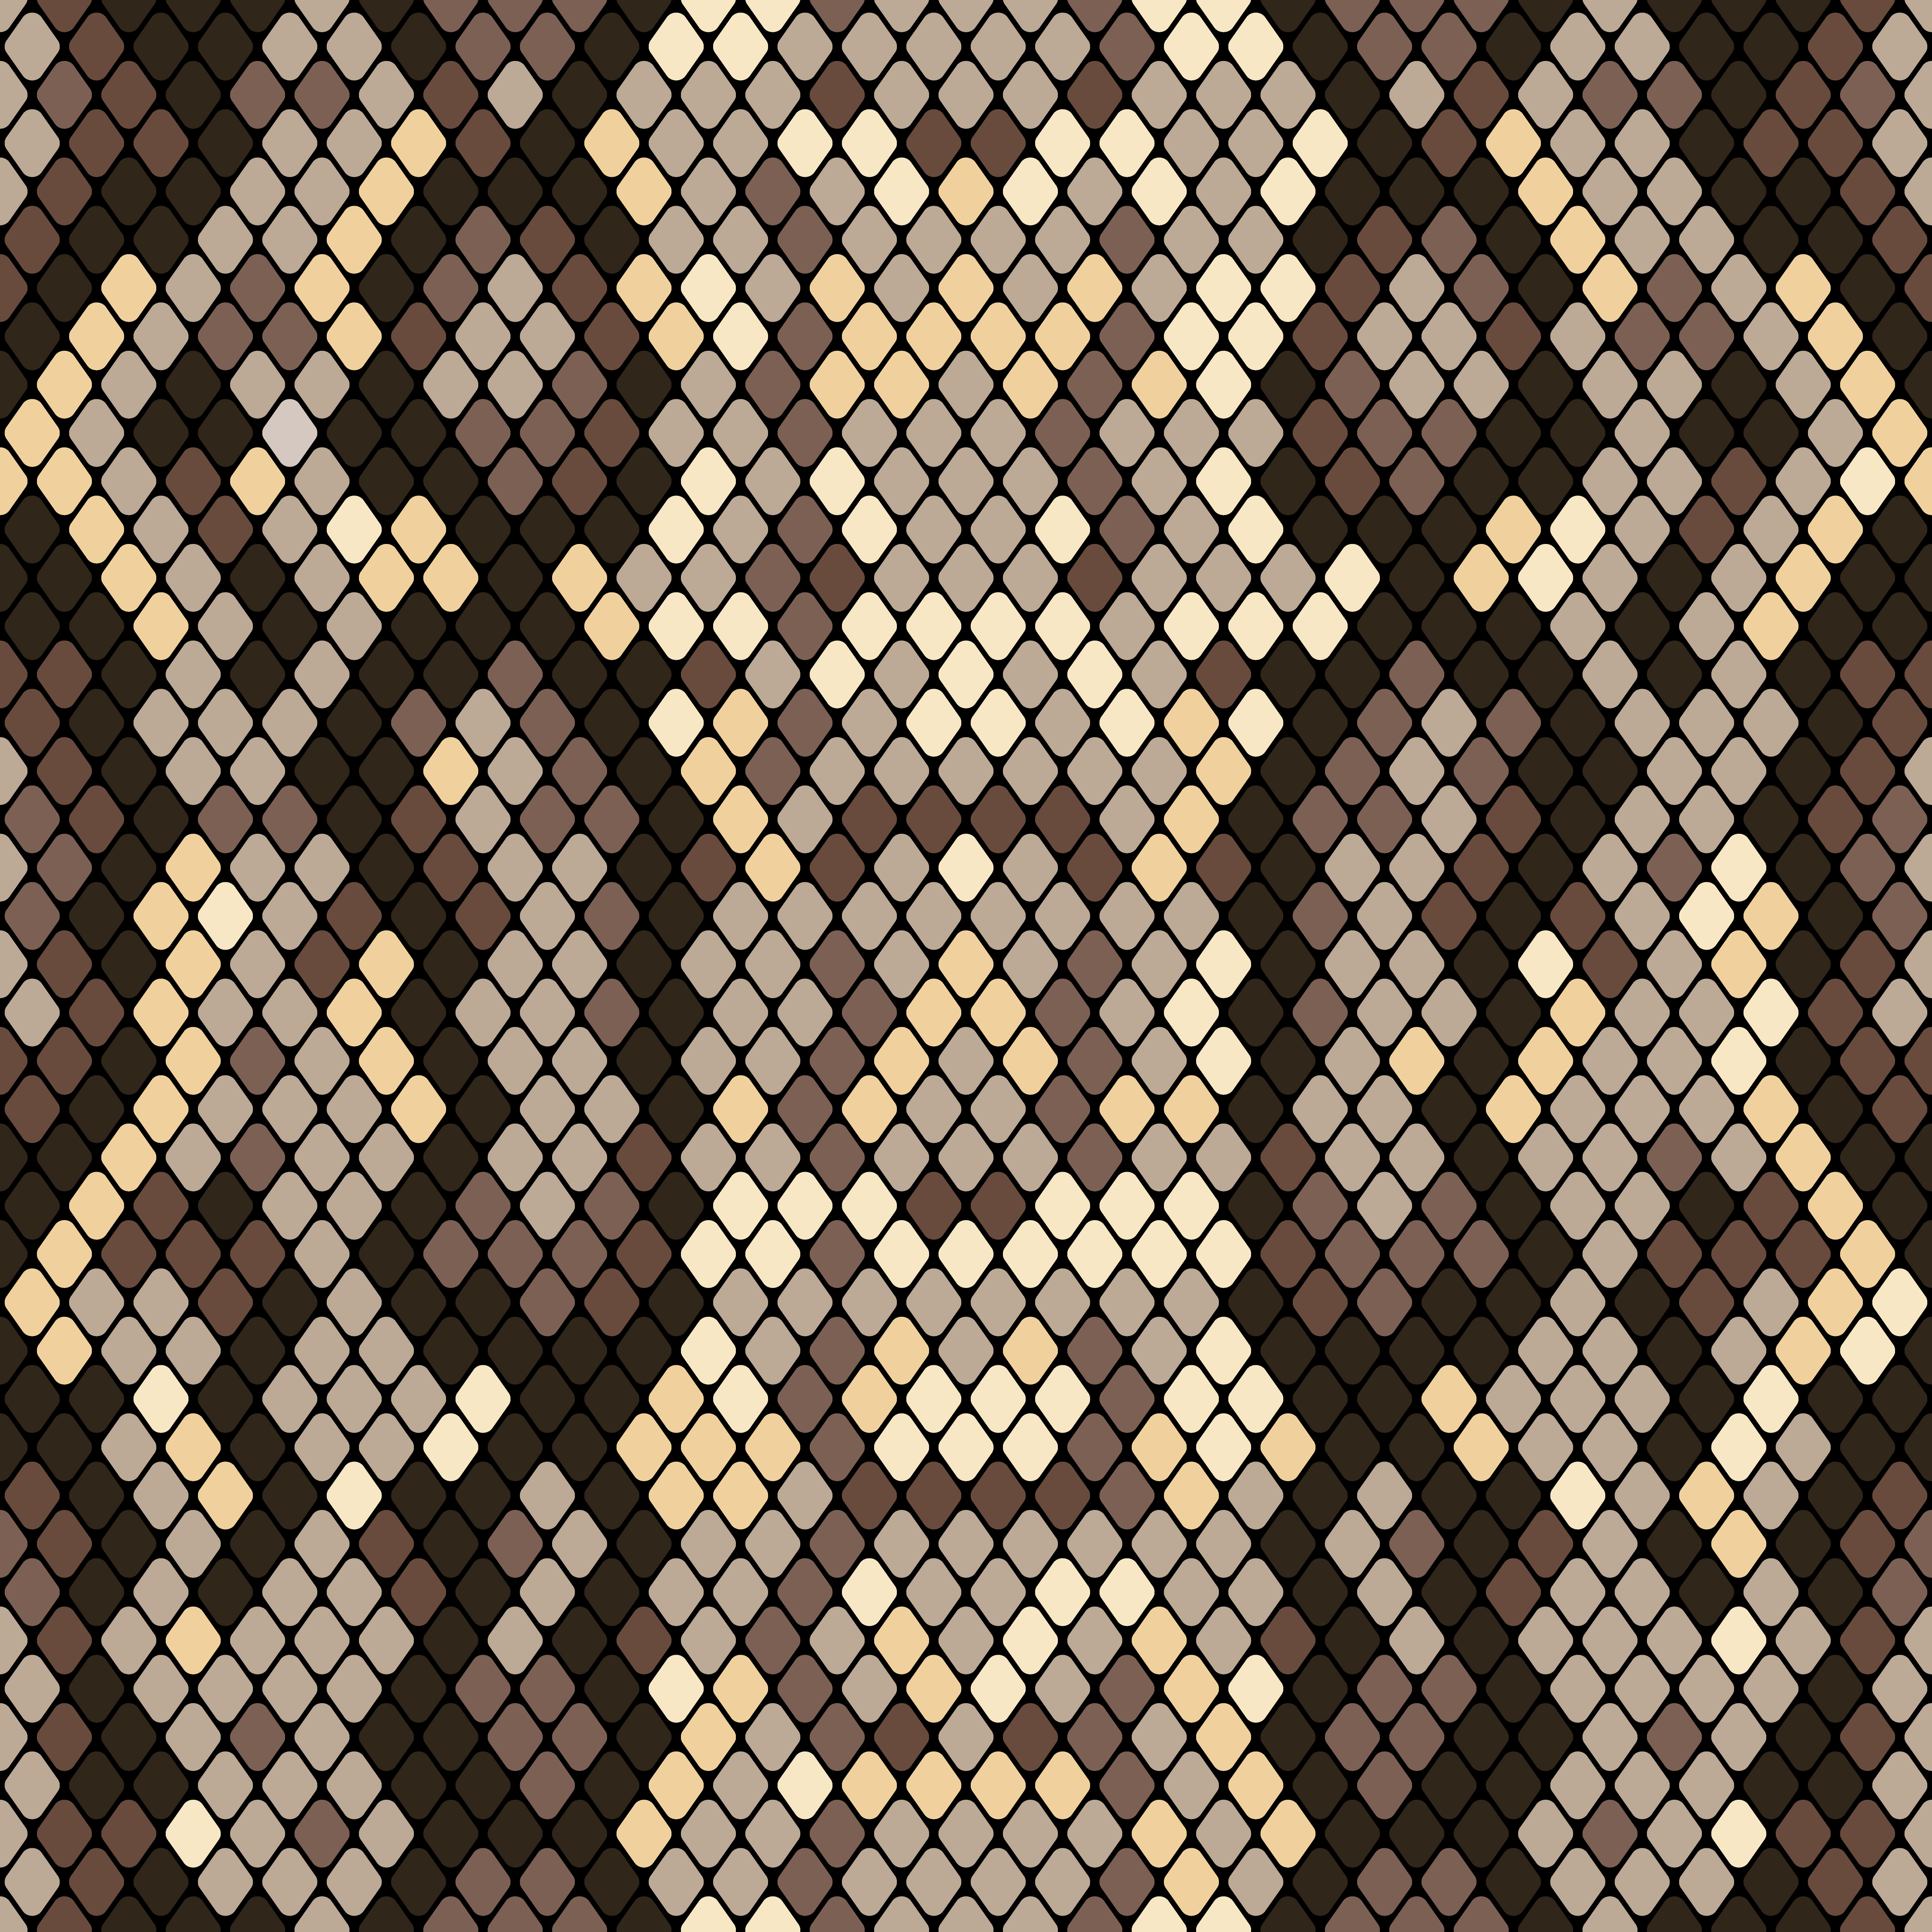 Snakeskin seamless pattern. Realistic texture of snake or another reptile skin. Beige and brown ...